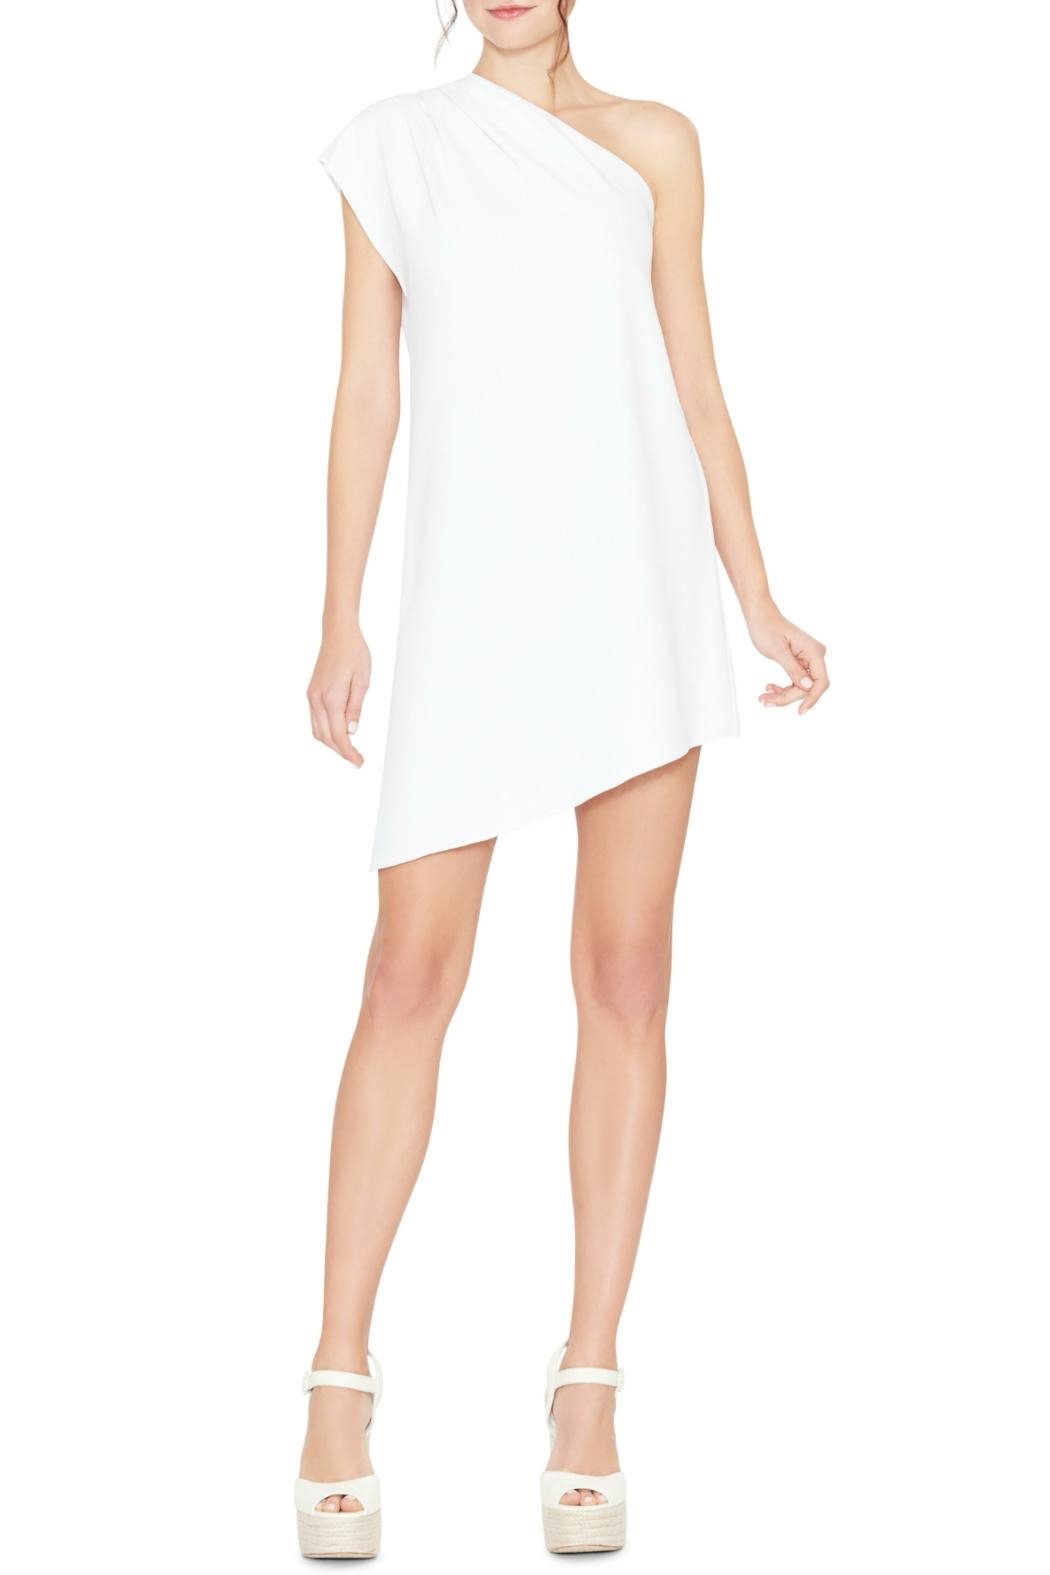 Alice + Olivia Melina One Shoulder Dress - Main Image